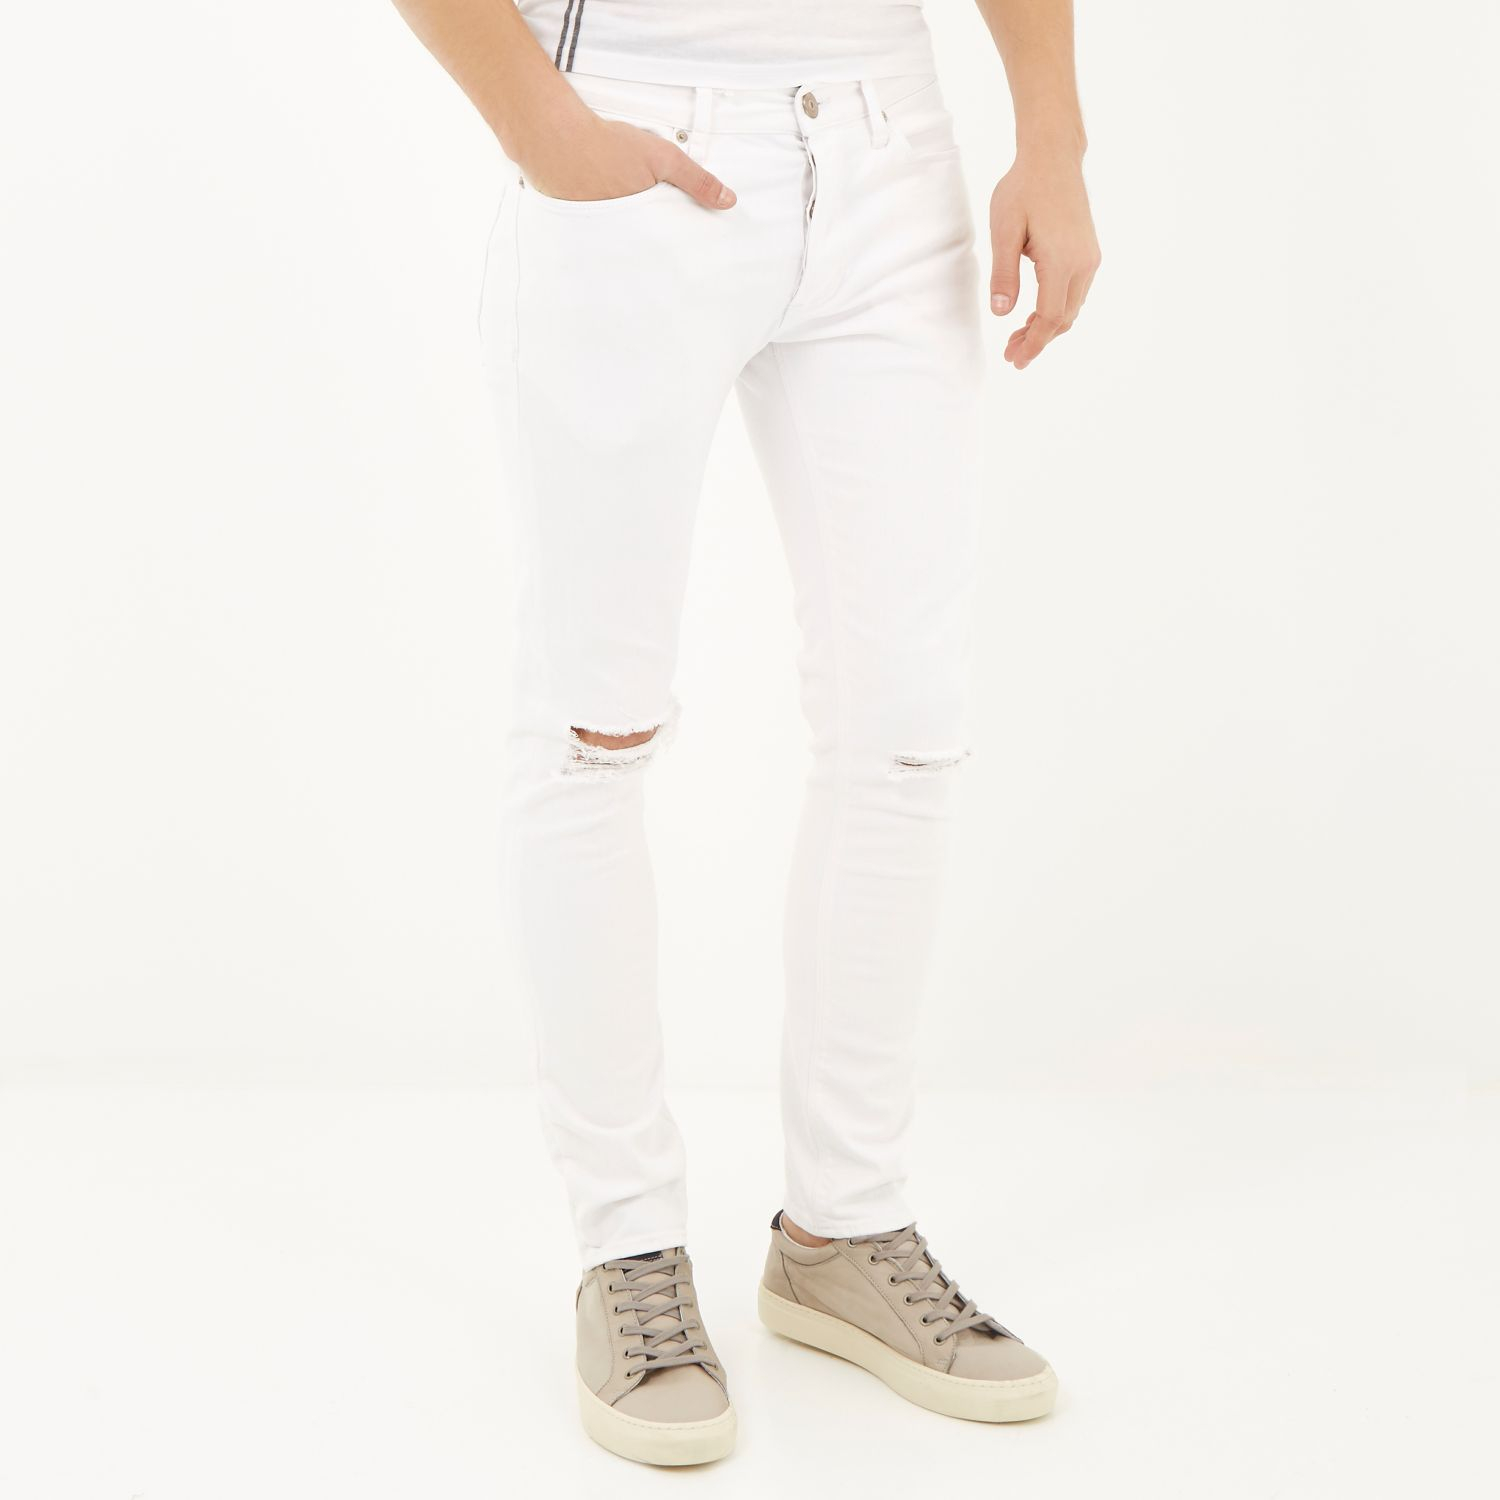 River island White Ripped Eddy Skinny Stretch Jeans in White for